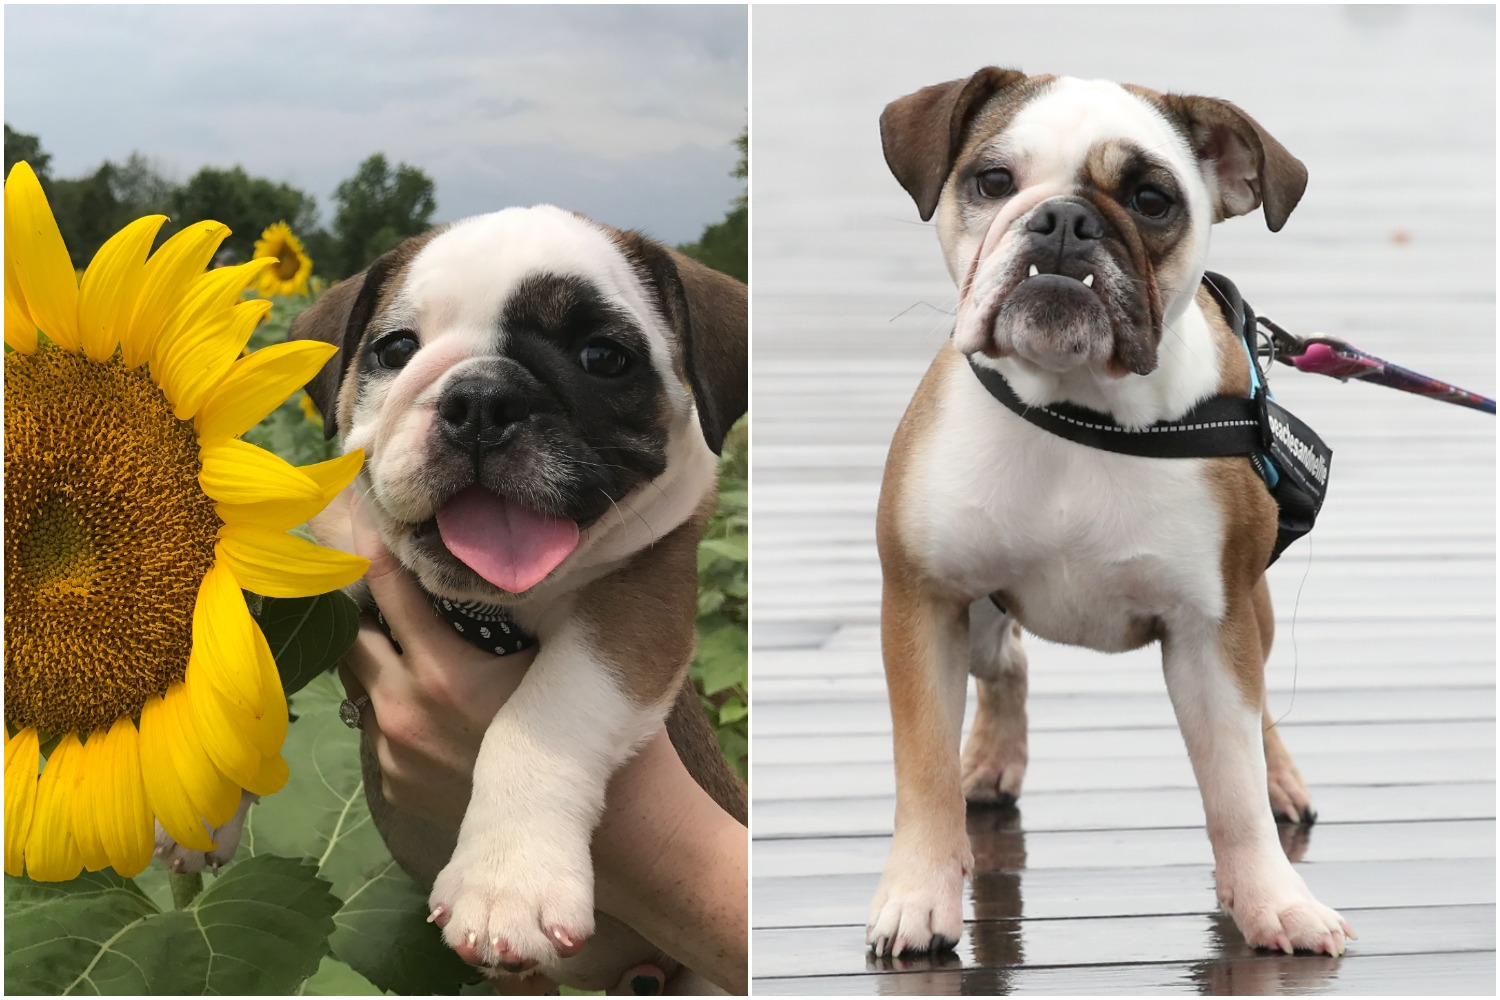 National Puppy Day was last week, but we decided to look{ } up our RUFFined stars and see just how much they've grown! Check out these puppy pics, provided by the dog's owner, next to their RUFFined feature. Nellie still looks like a puppy but she's as cute as ever.{ }